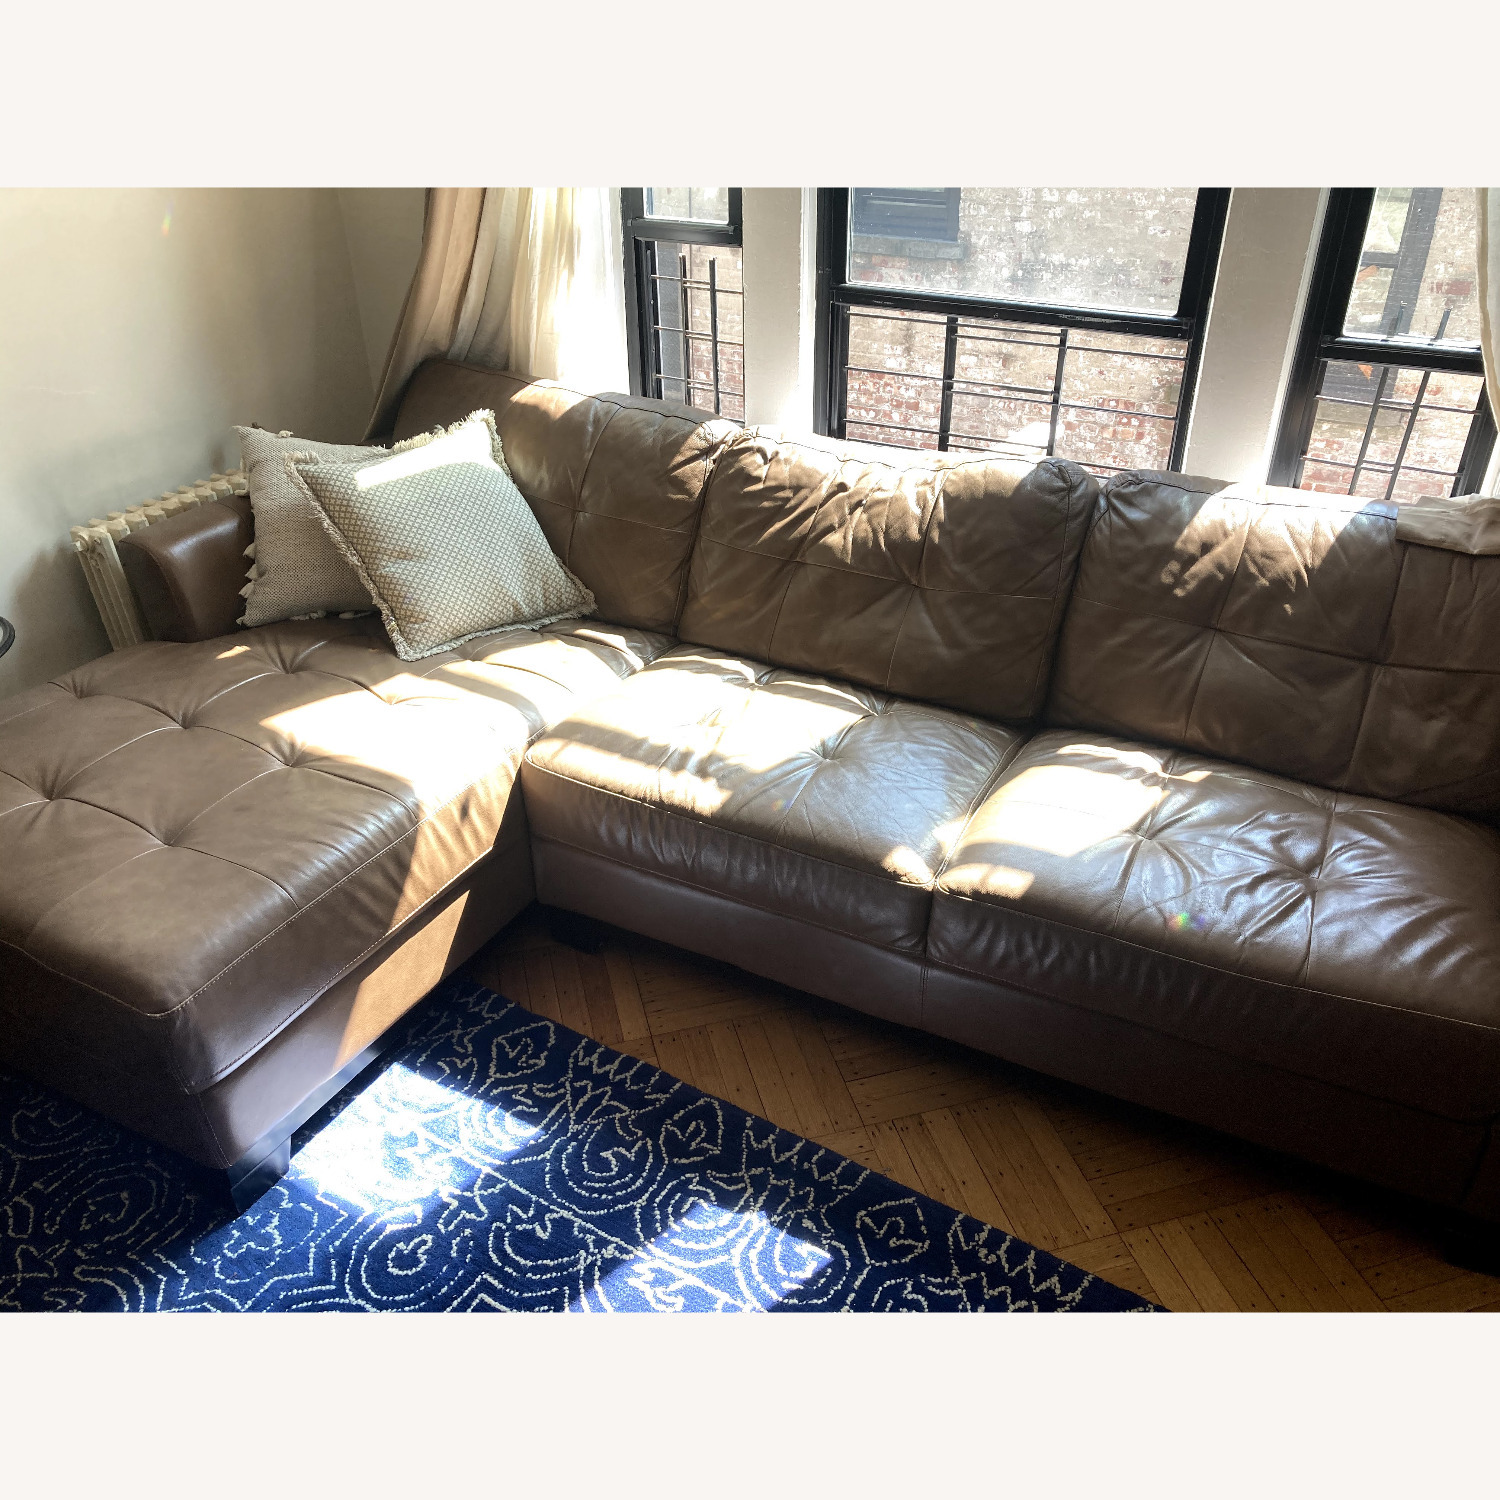 Macy's Martino Leather Chaise Sectional Sofa - image-6